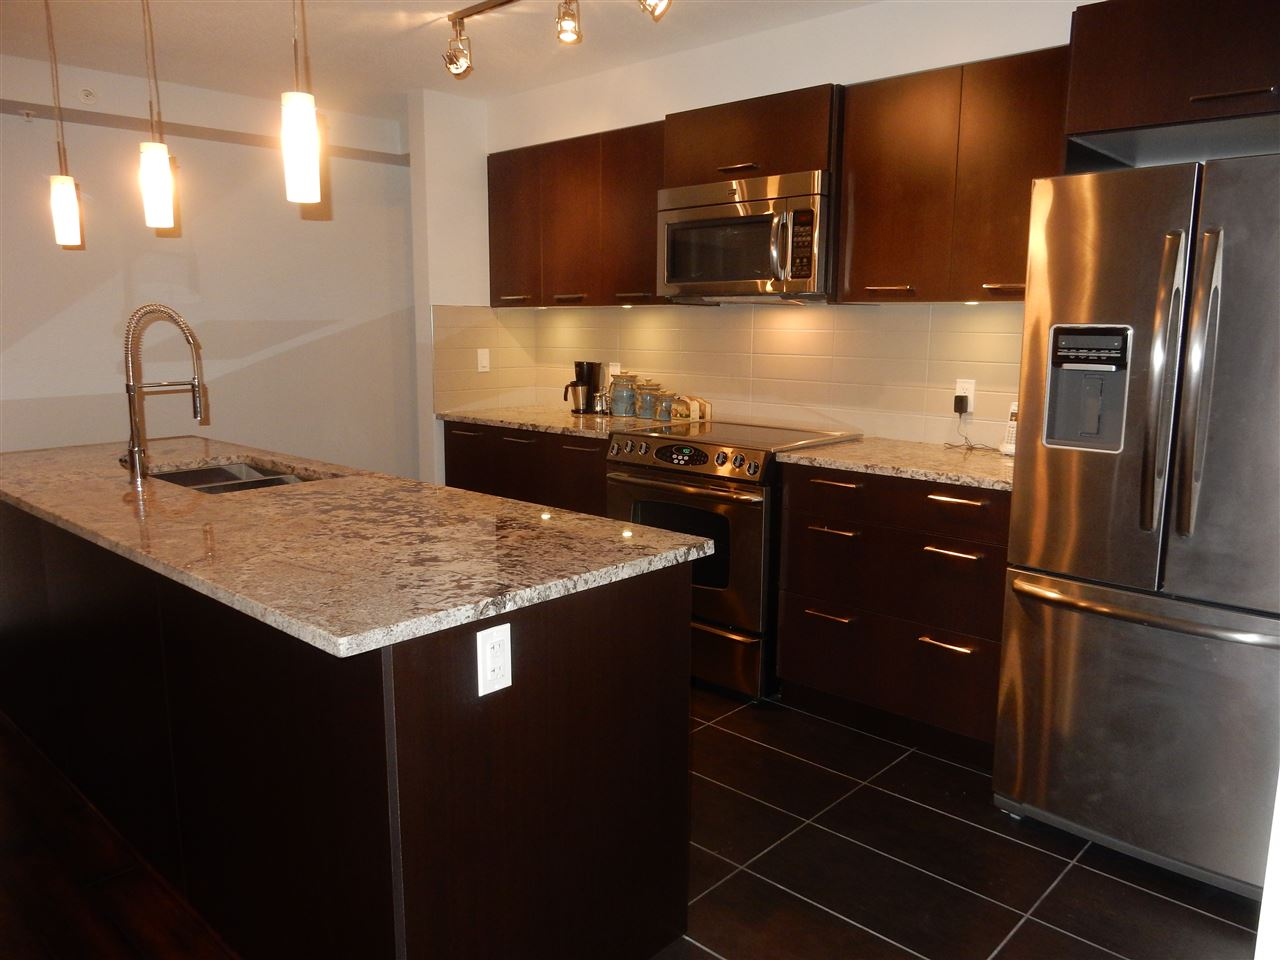 Photo 3: 312 5682 WHARF Avenue in Sechelt: Sechelt District Condo for sale (Sunshine Coast)  : MLS(r) # R2044638